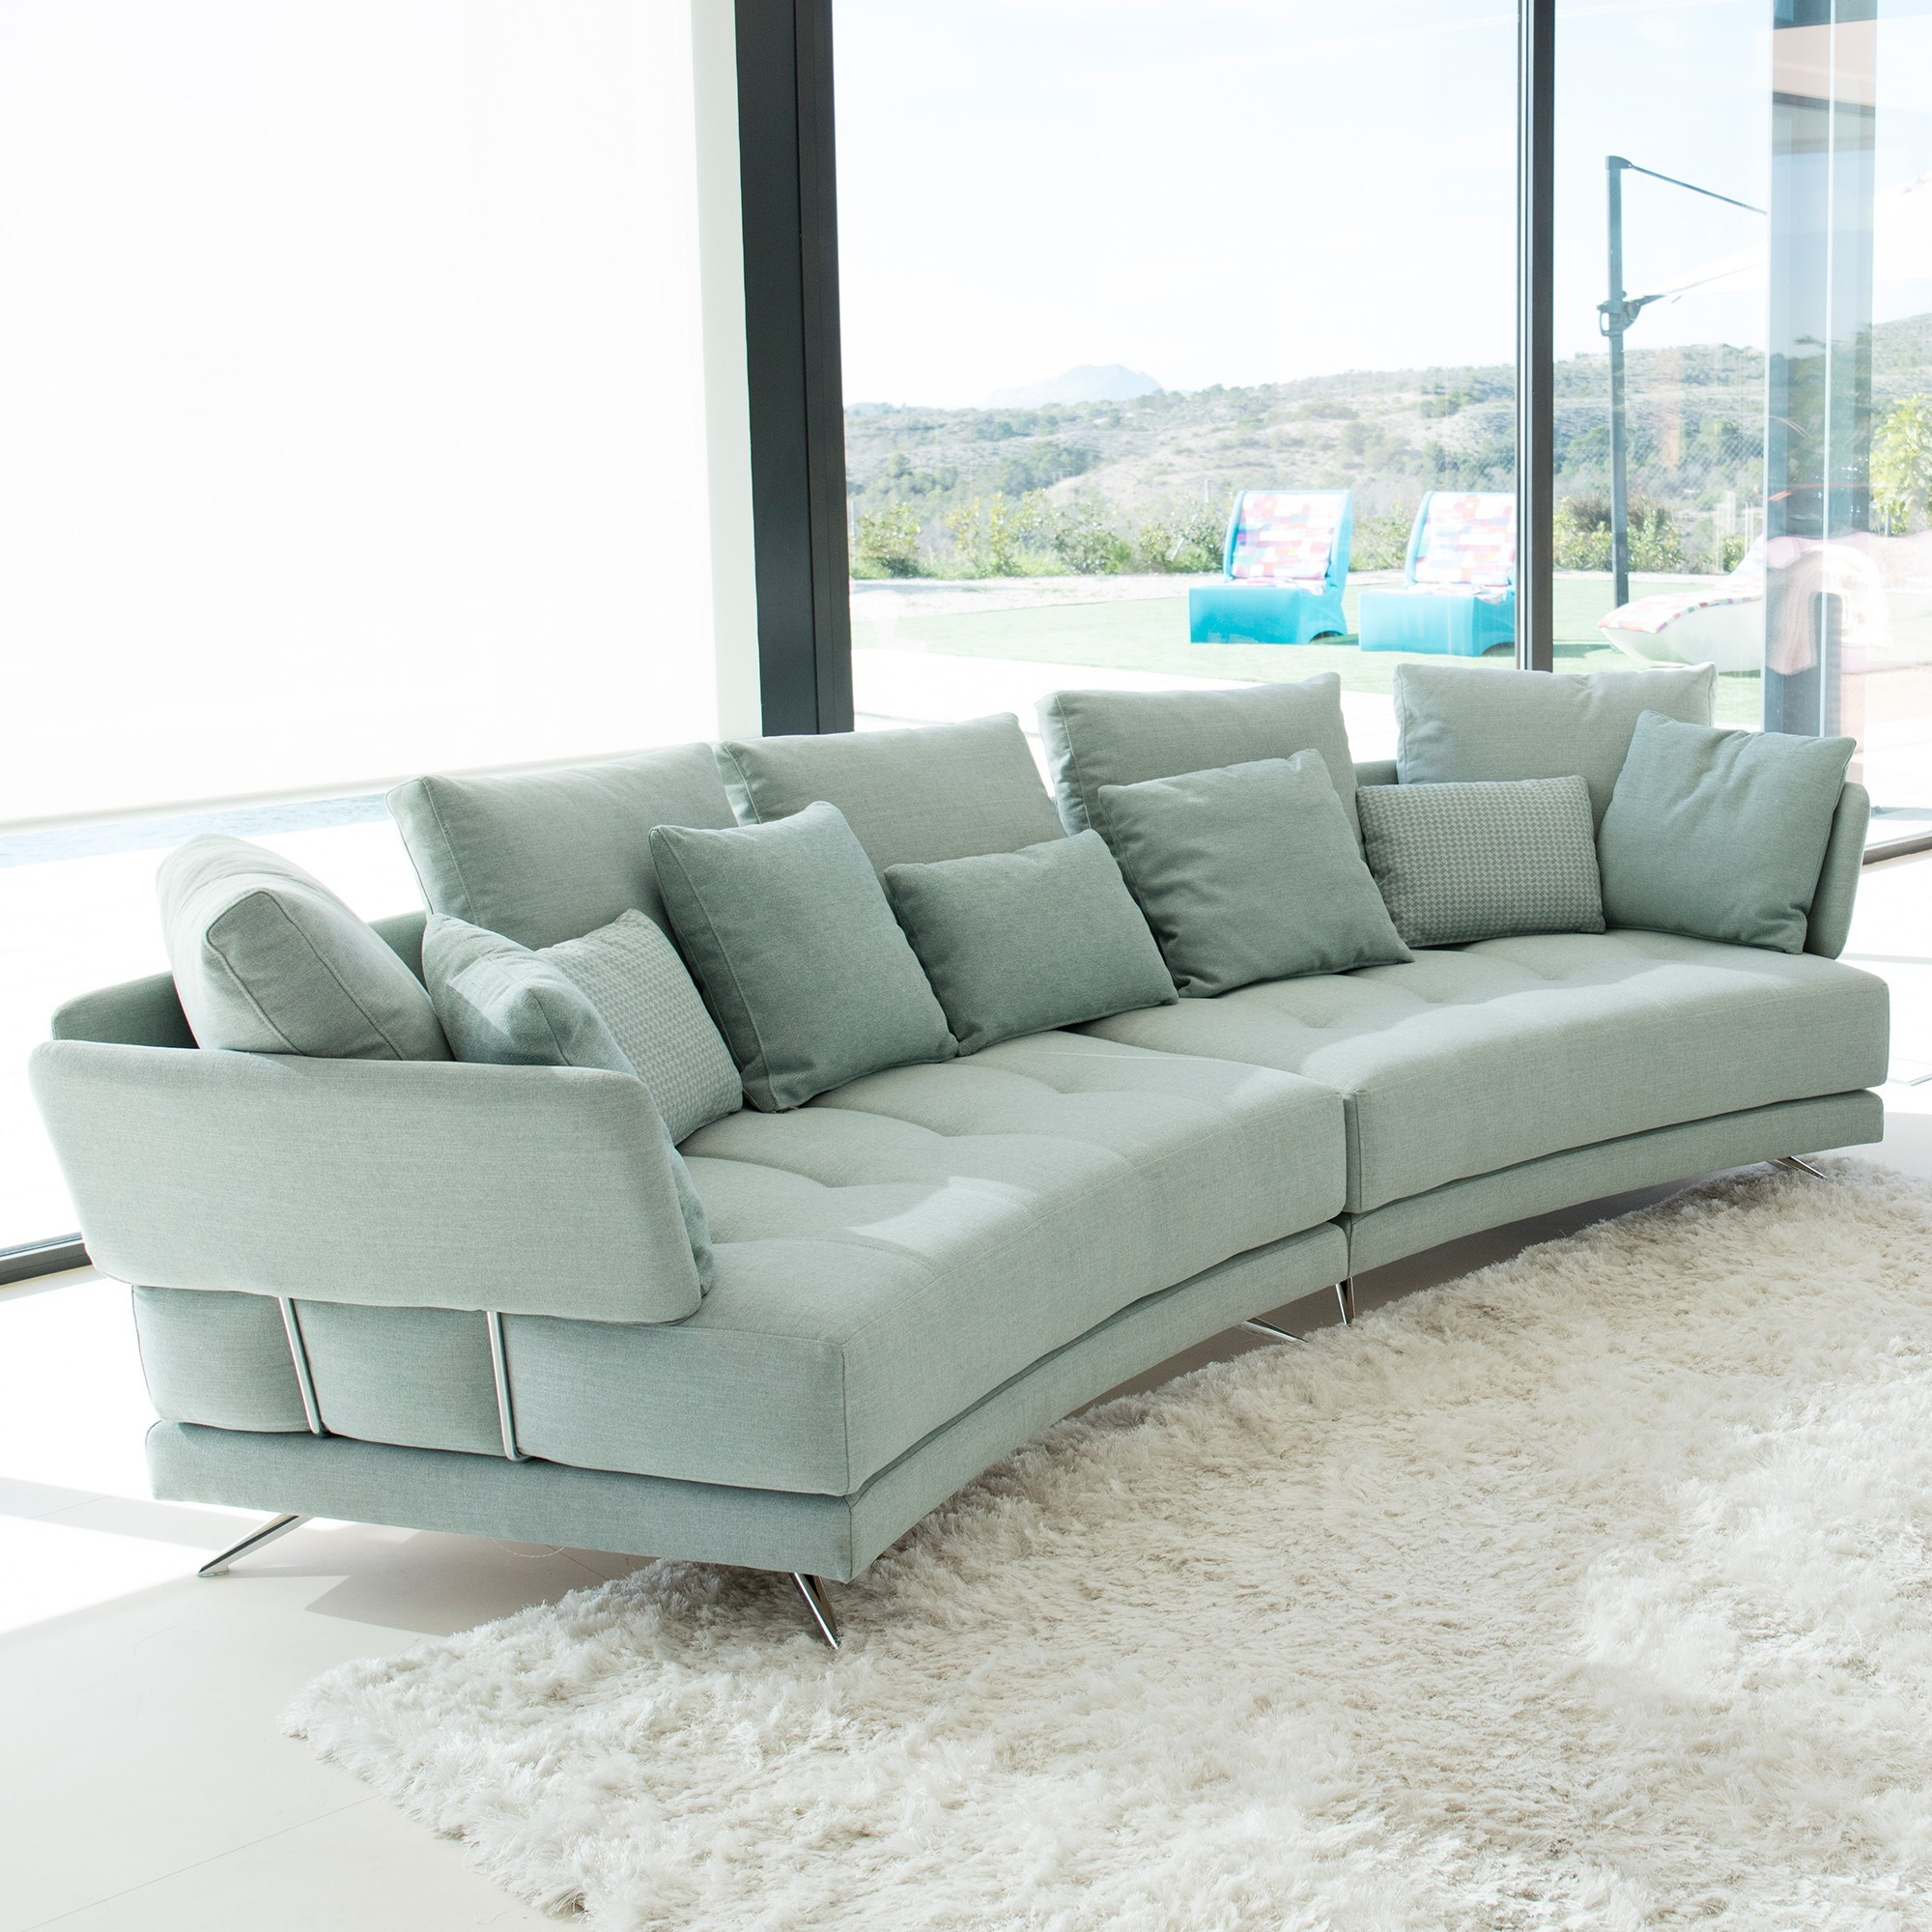 Fama Pacific Curved Modular Sofa All Sofas